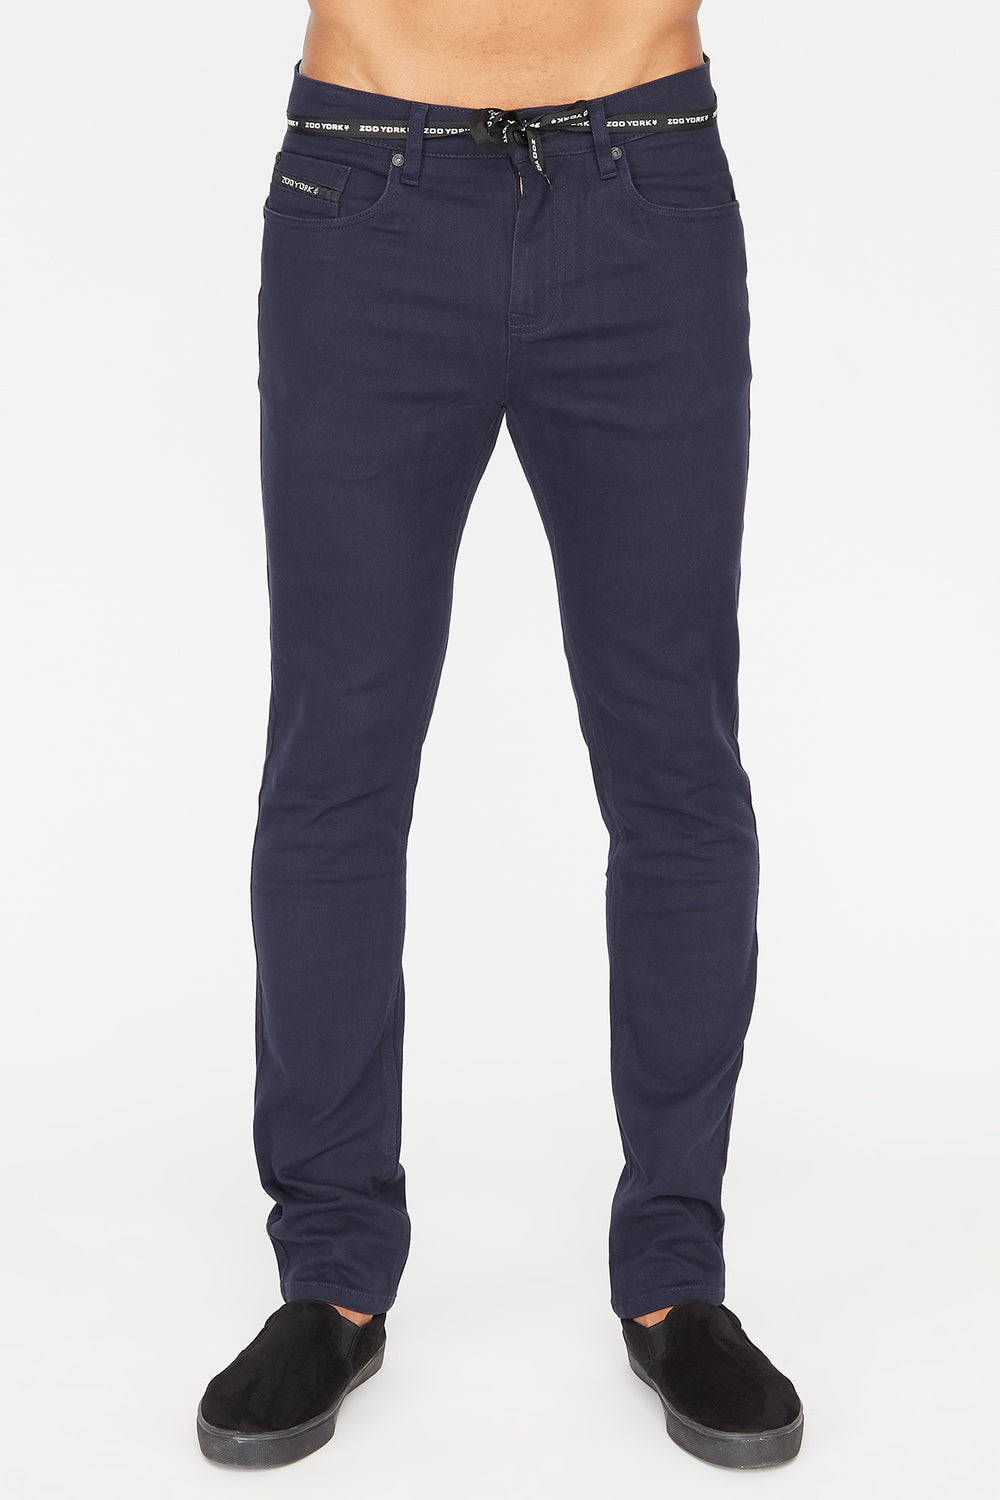 Zoo York Mens Skinny Jeans Navy